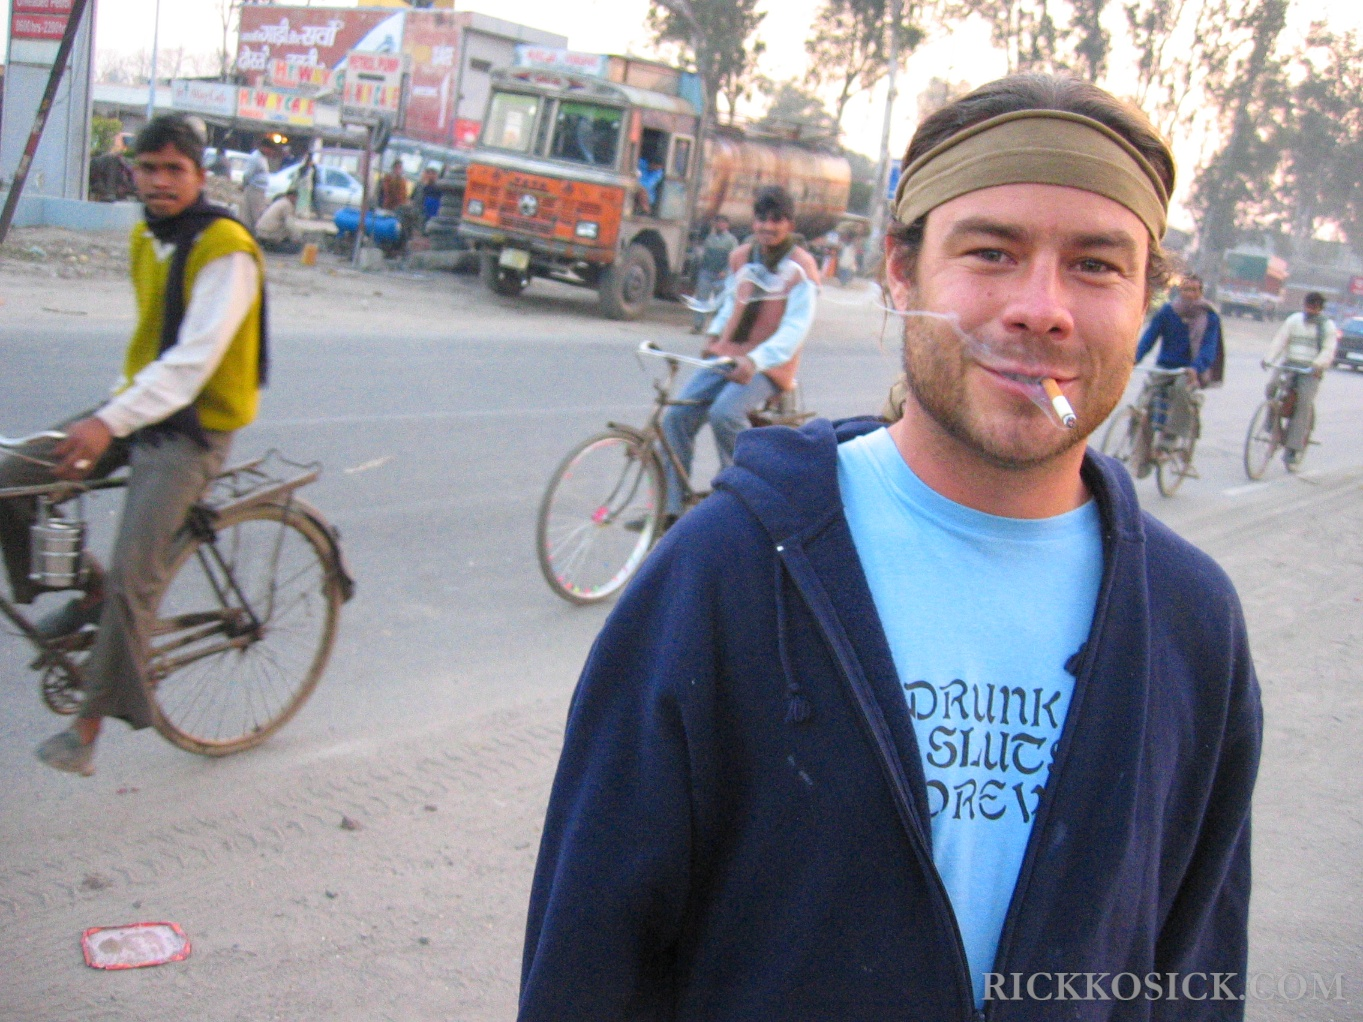 Chris Pontius smoking a cigarette (or weed)